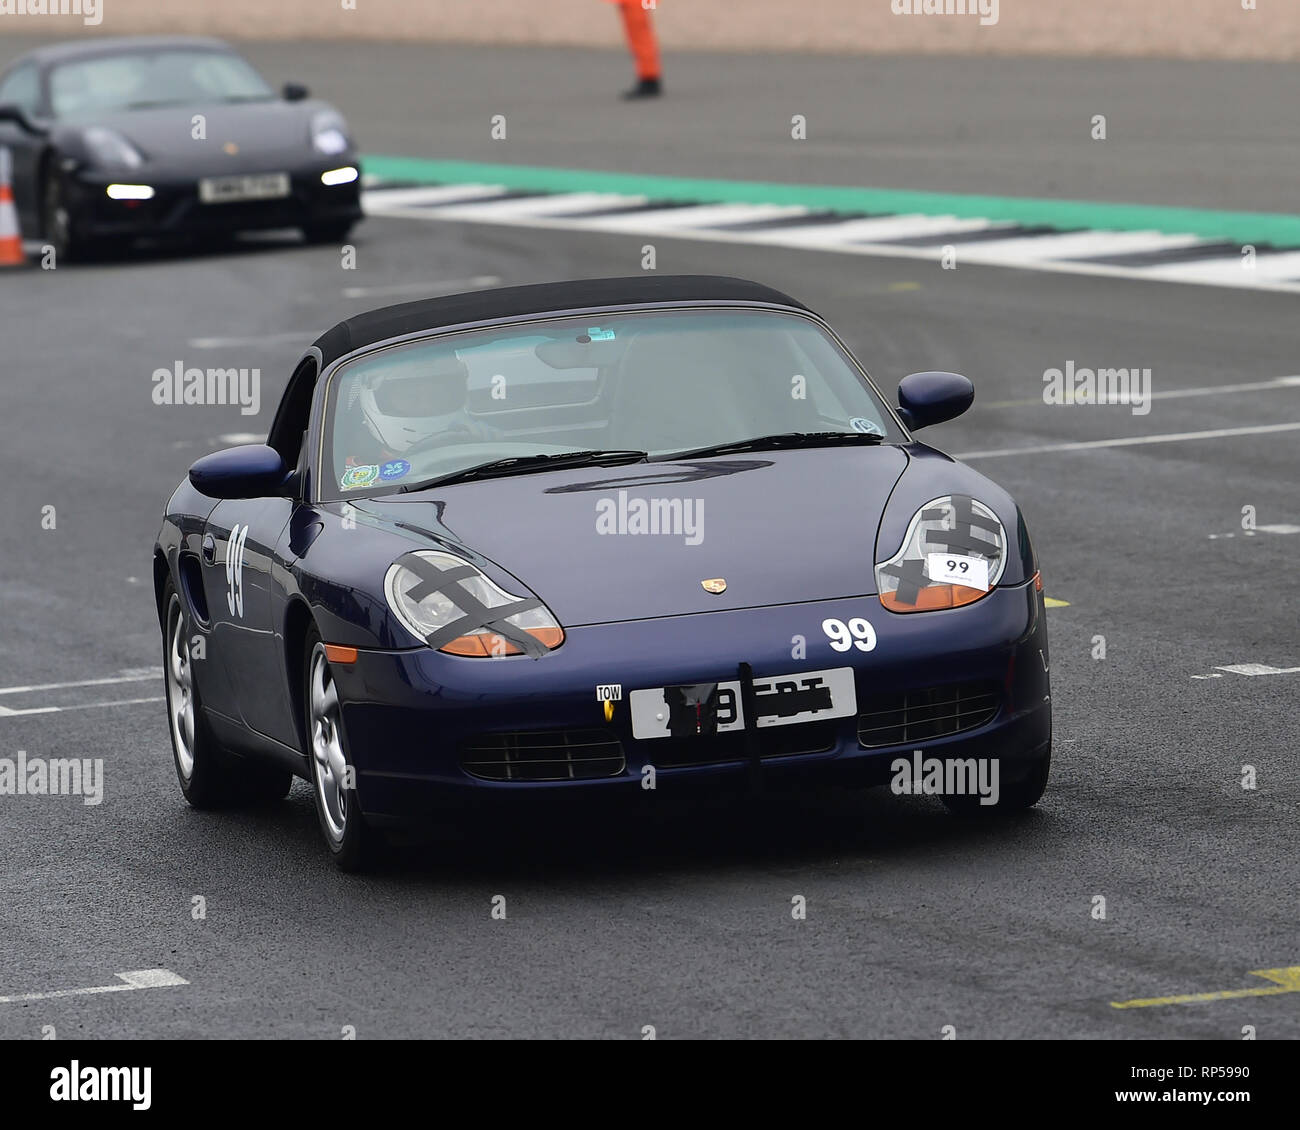 Boxster S Stock Photos & Boxster S Stock Images